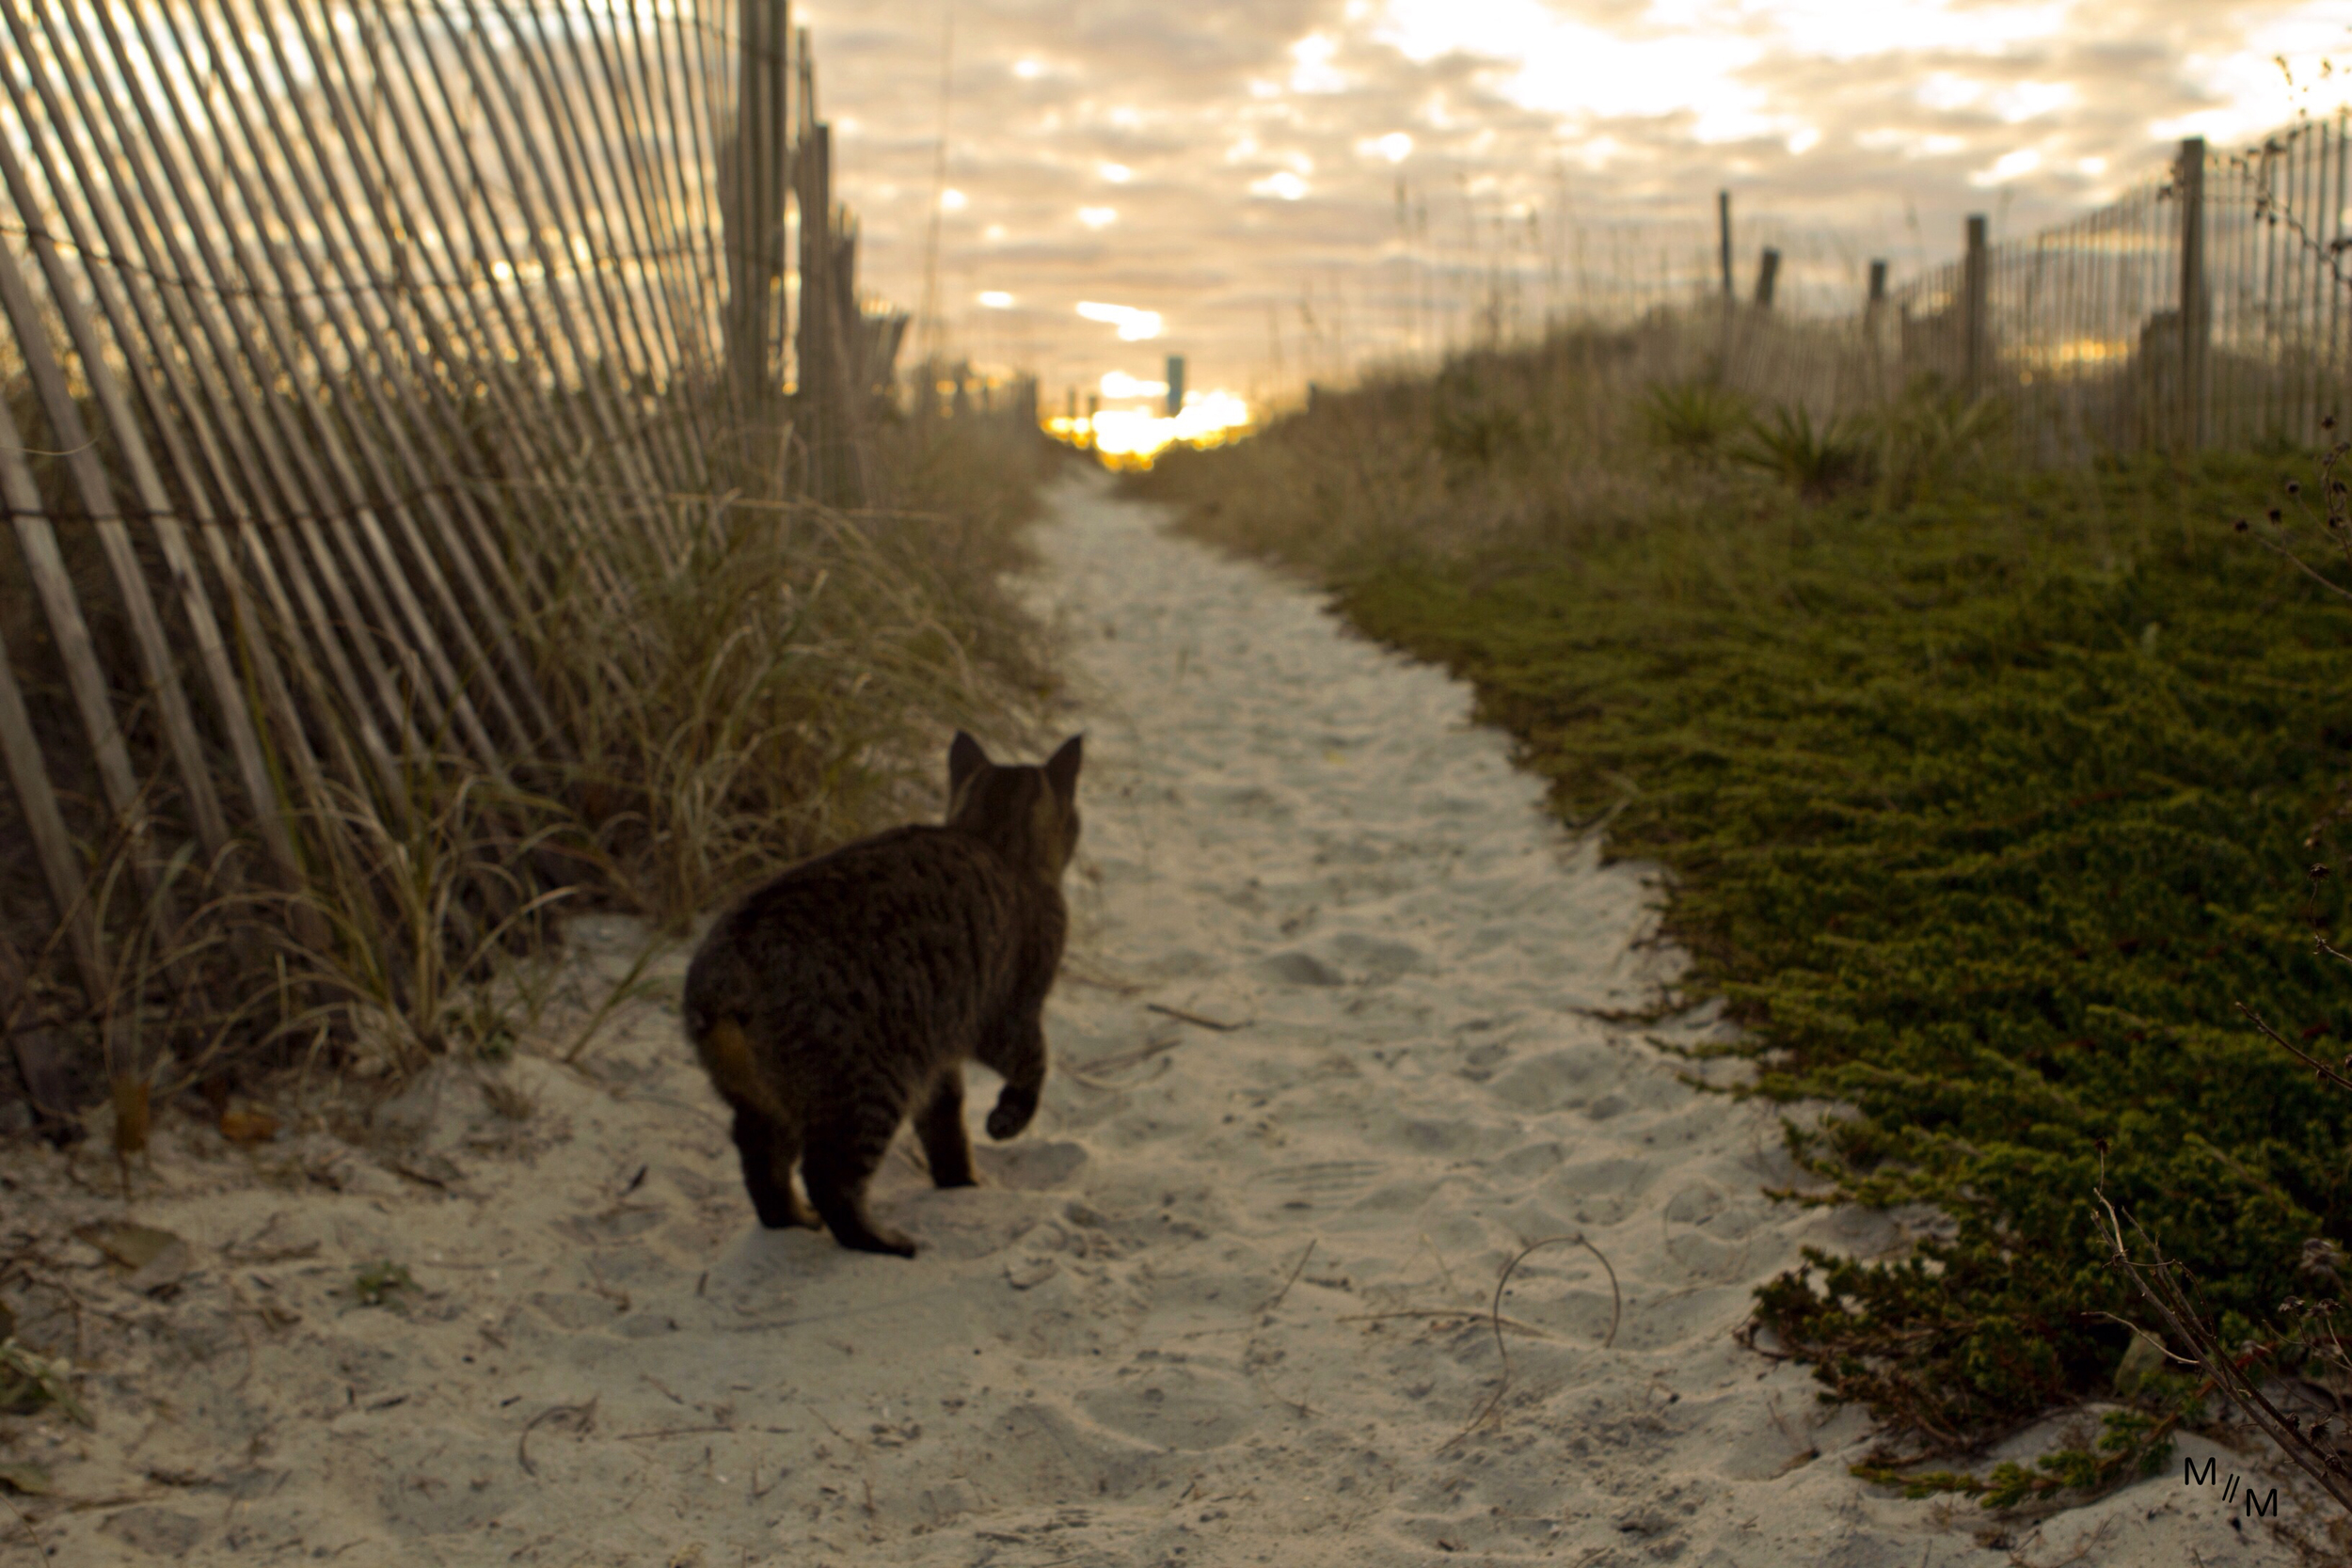 Dunecat leads the way